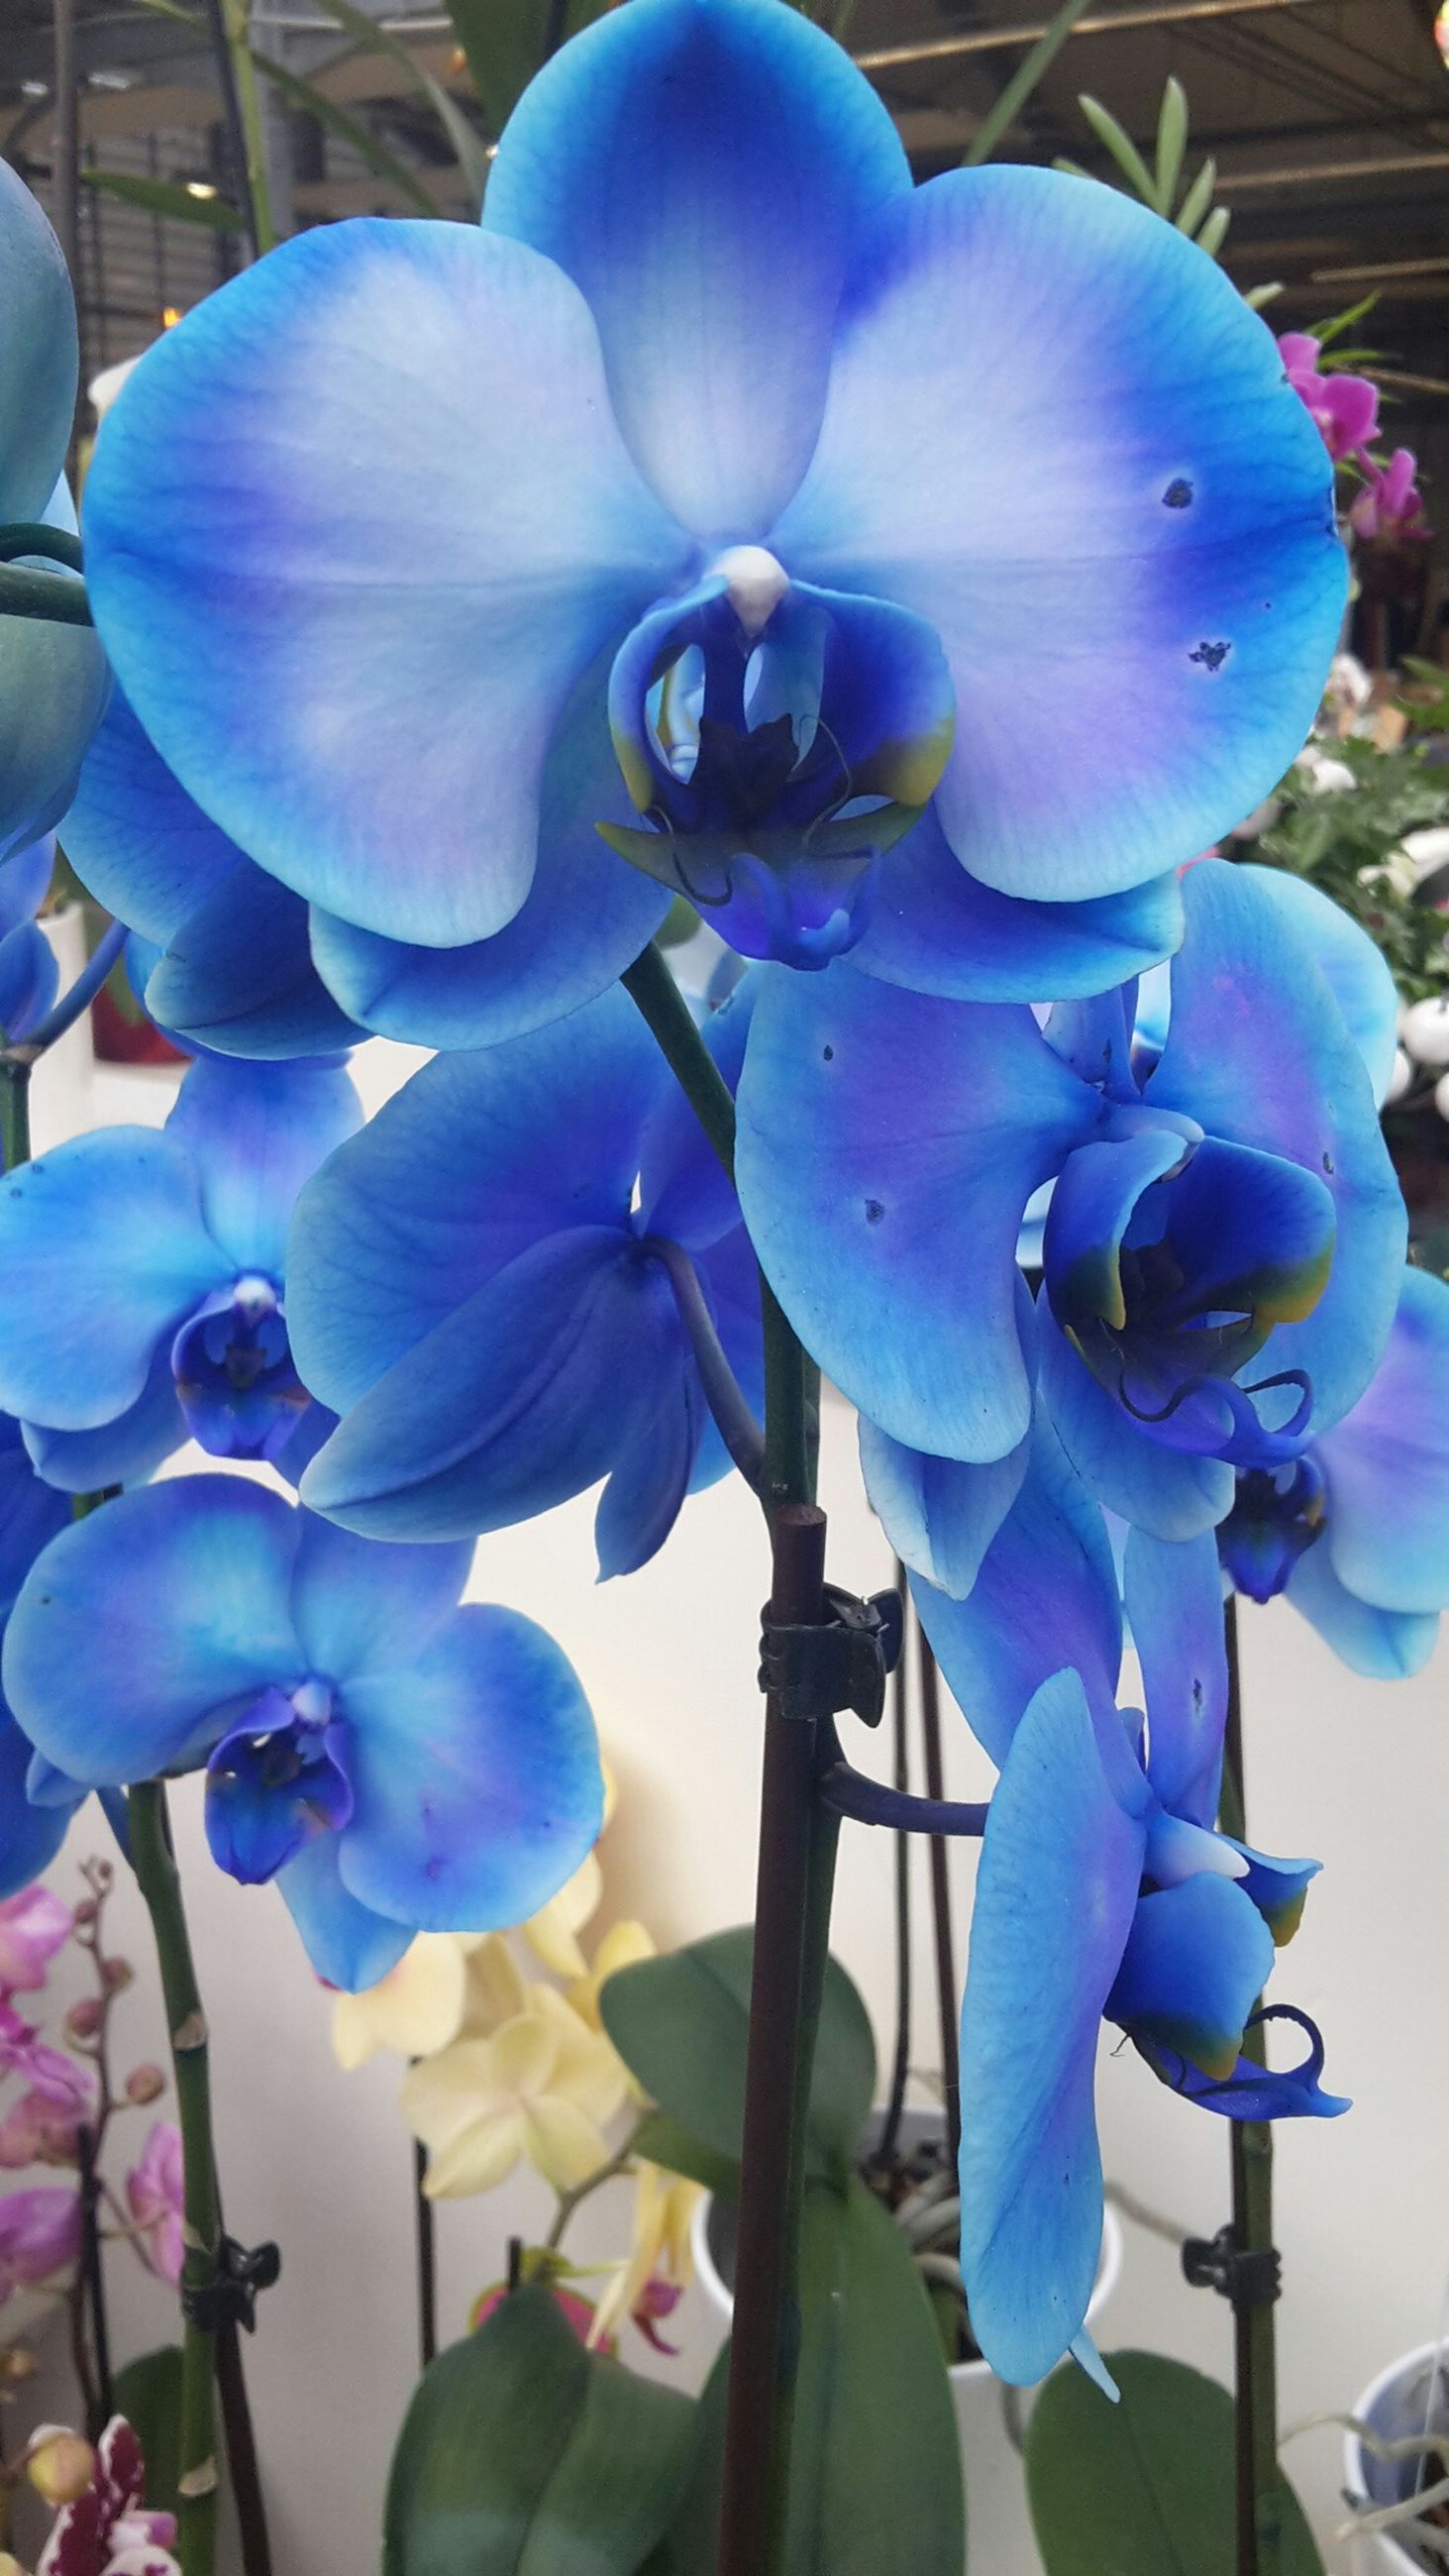 flower, petal, purple, flower head, fragility, freshness, blue, growth, beauty in nature, orchid, blooming, close-up, plant, nature, focus on foreground, in bloom, day, sunlight, outdoors, no people